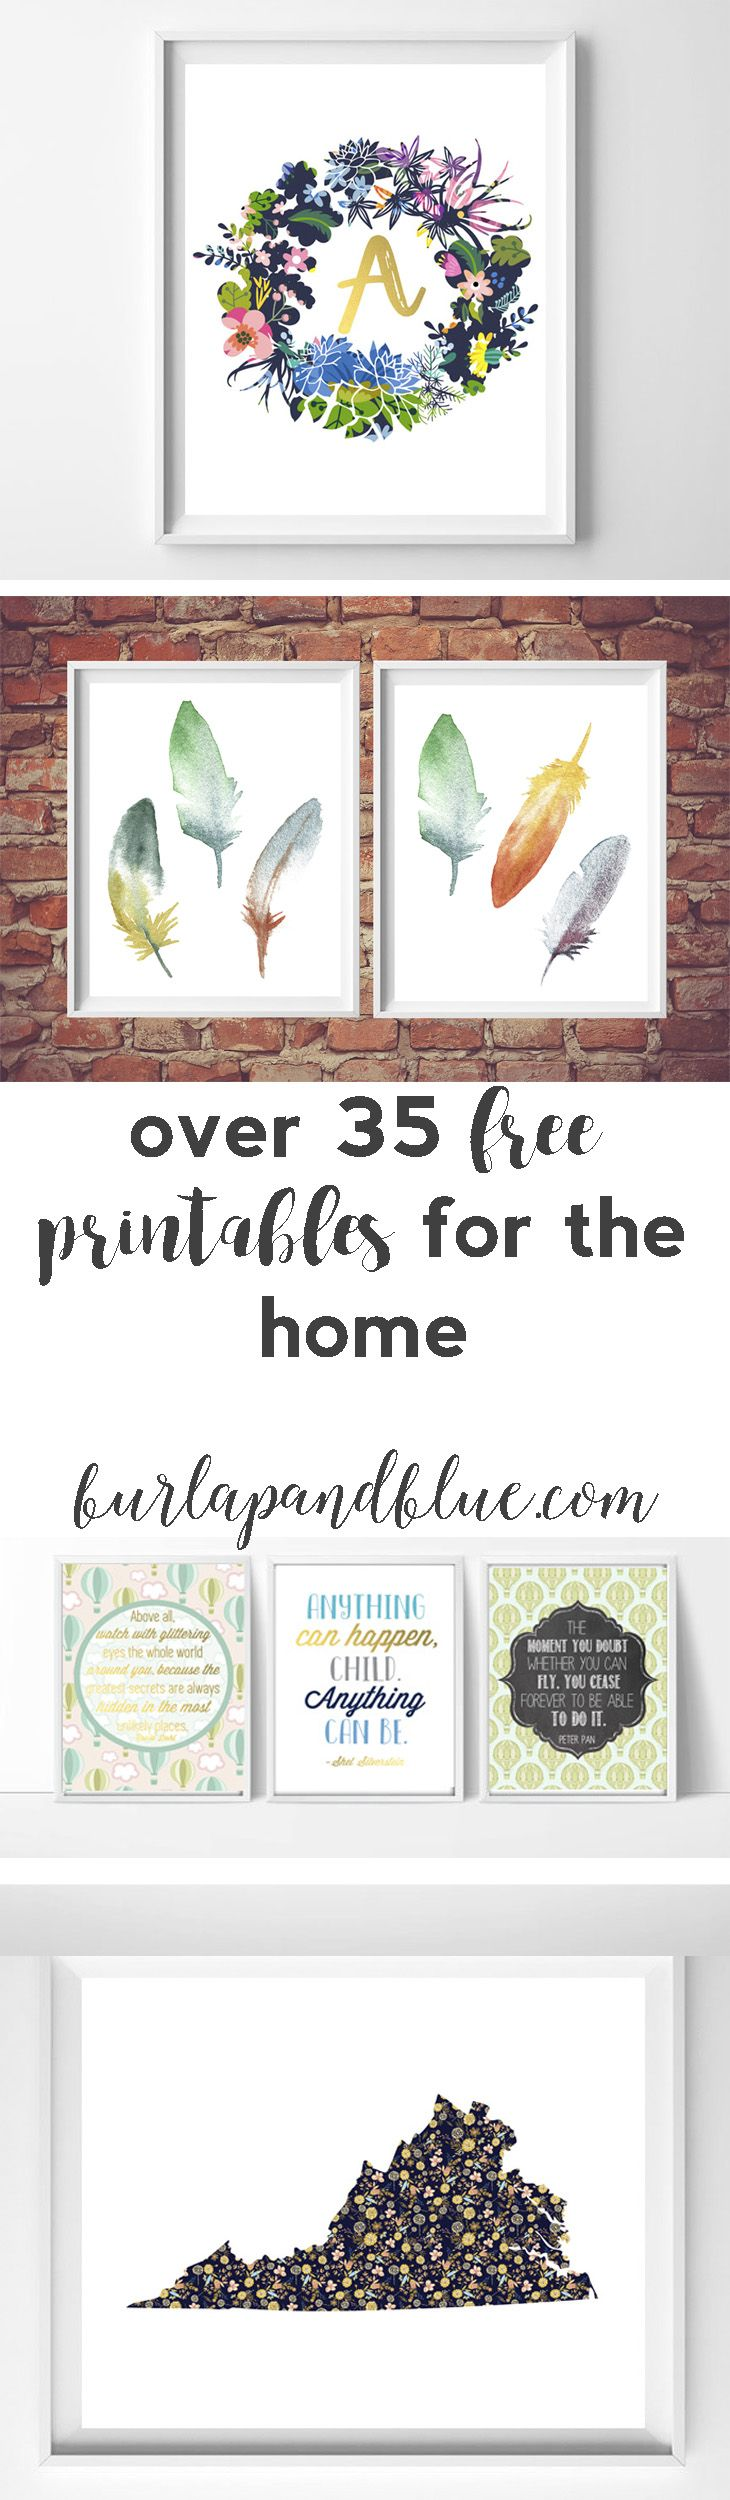 Decor hacks over 35 free printables for the home lots for Home decorations ideas for free